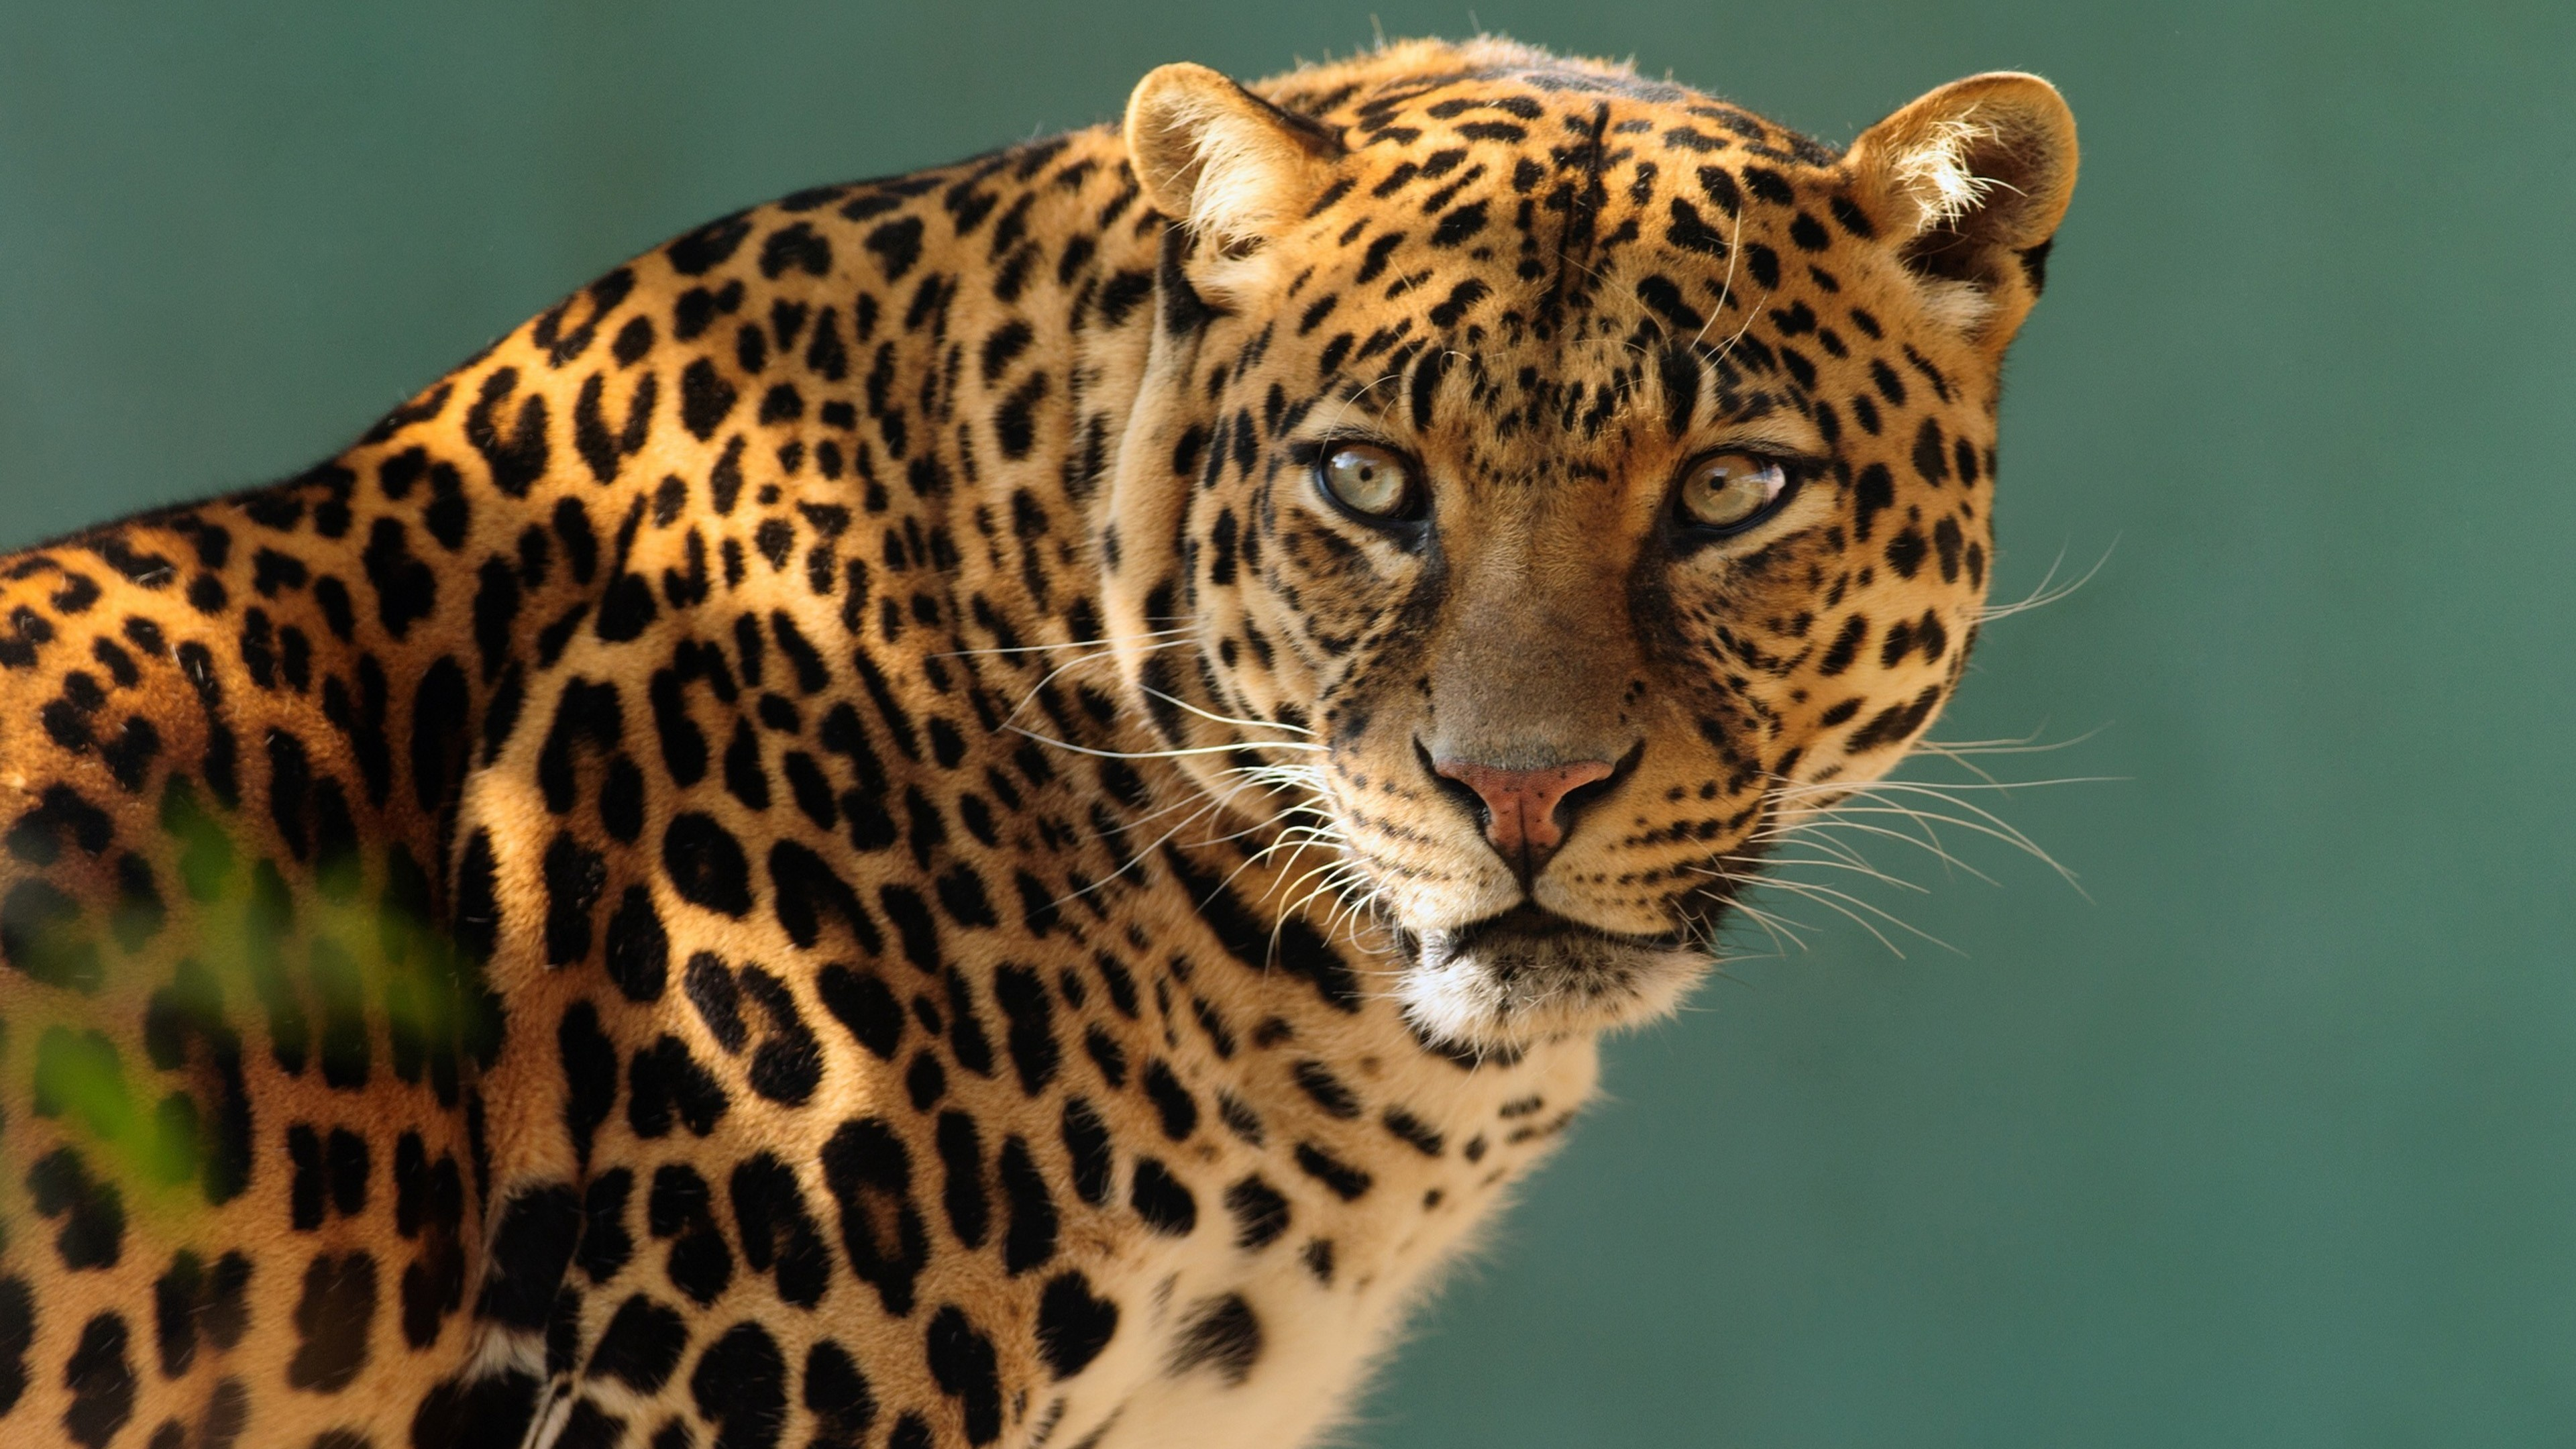 Wallpaper jaguar wild cat face animals 10237 - Jaguar animal hd wallpapers ...